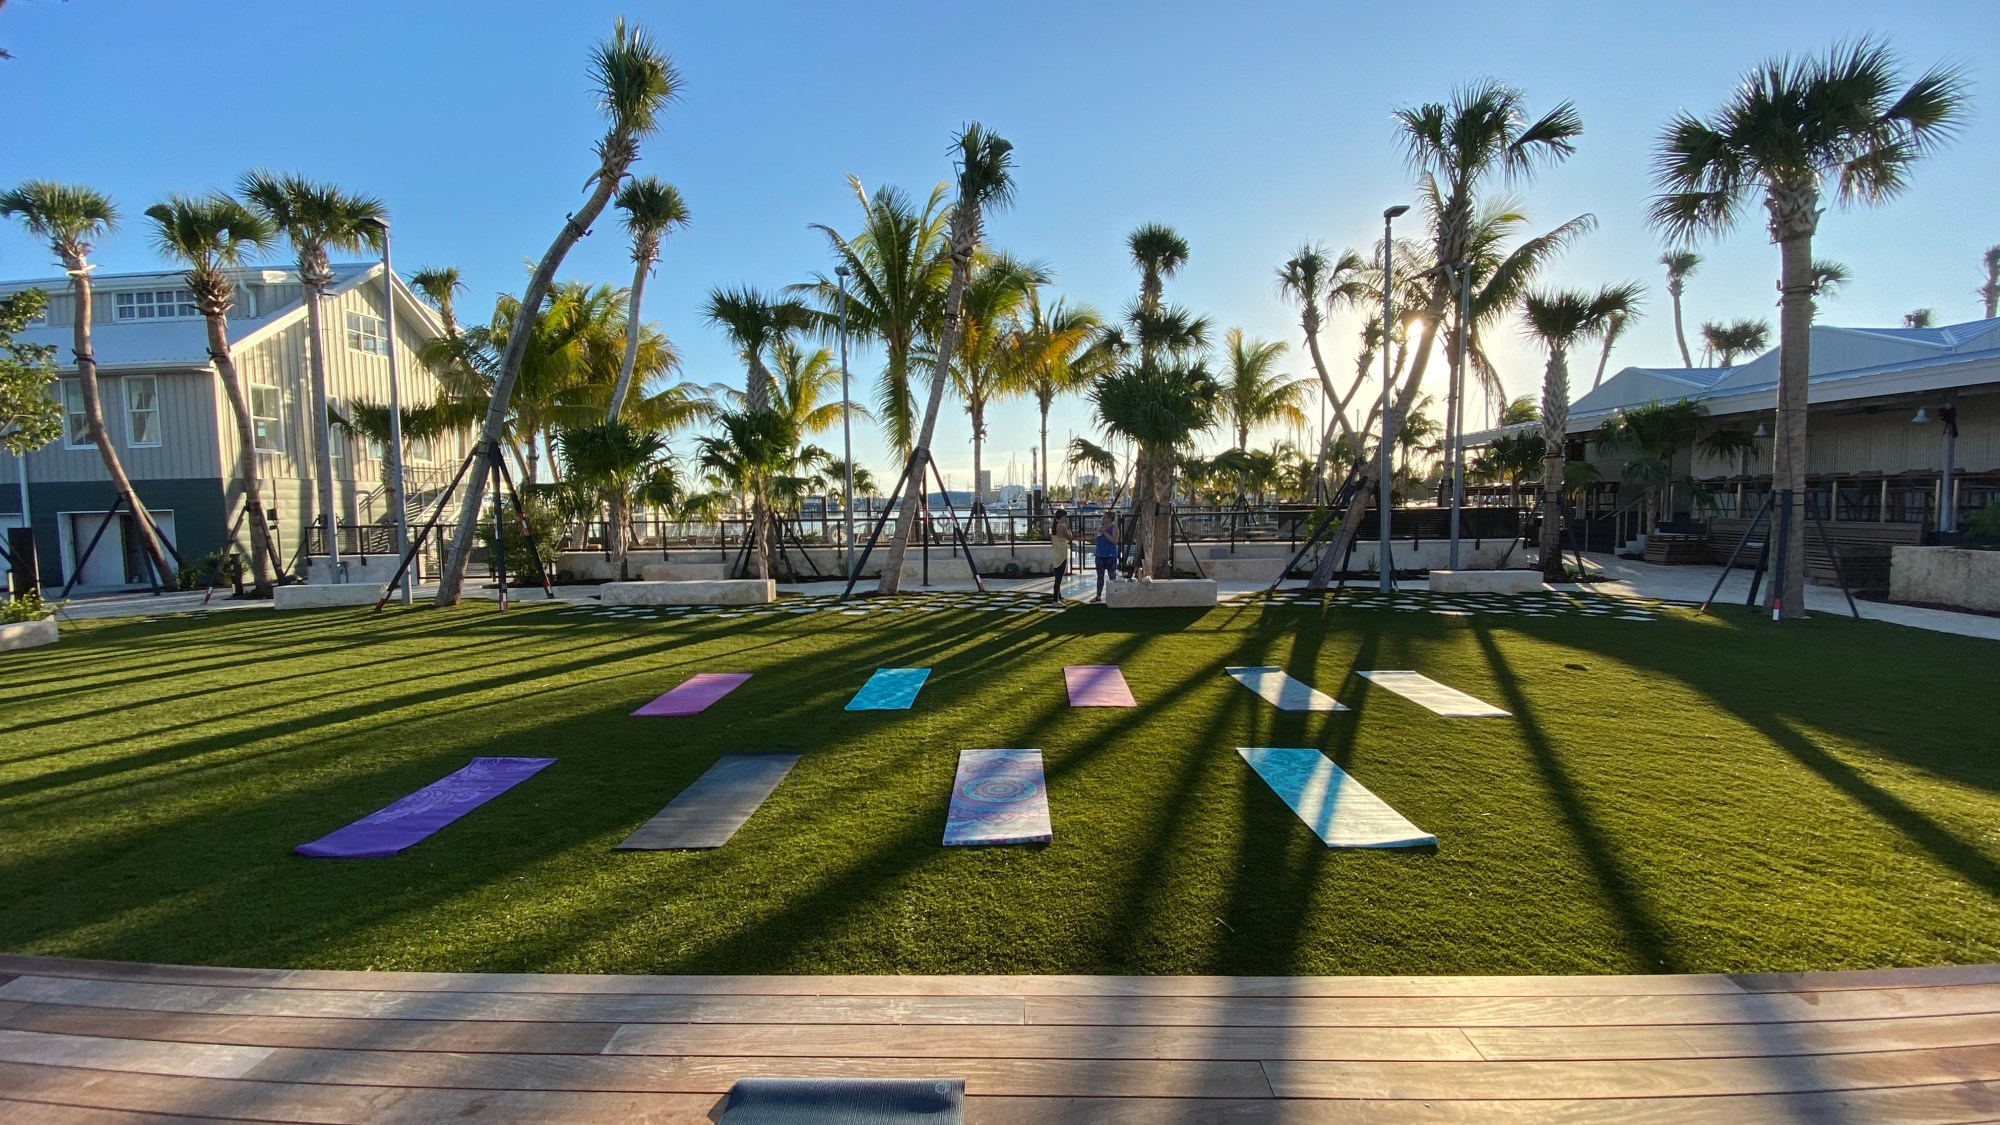 yoga mats on event lawn under palm trees for group yoga classes